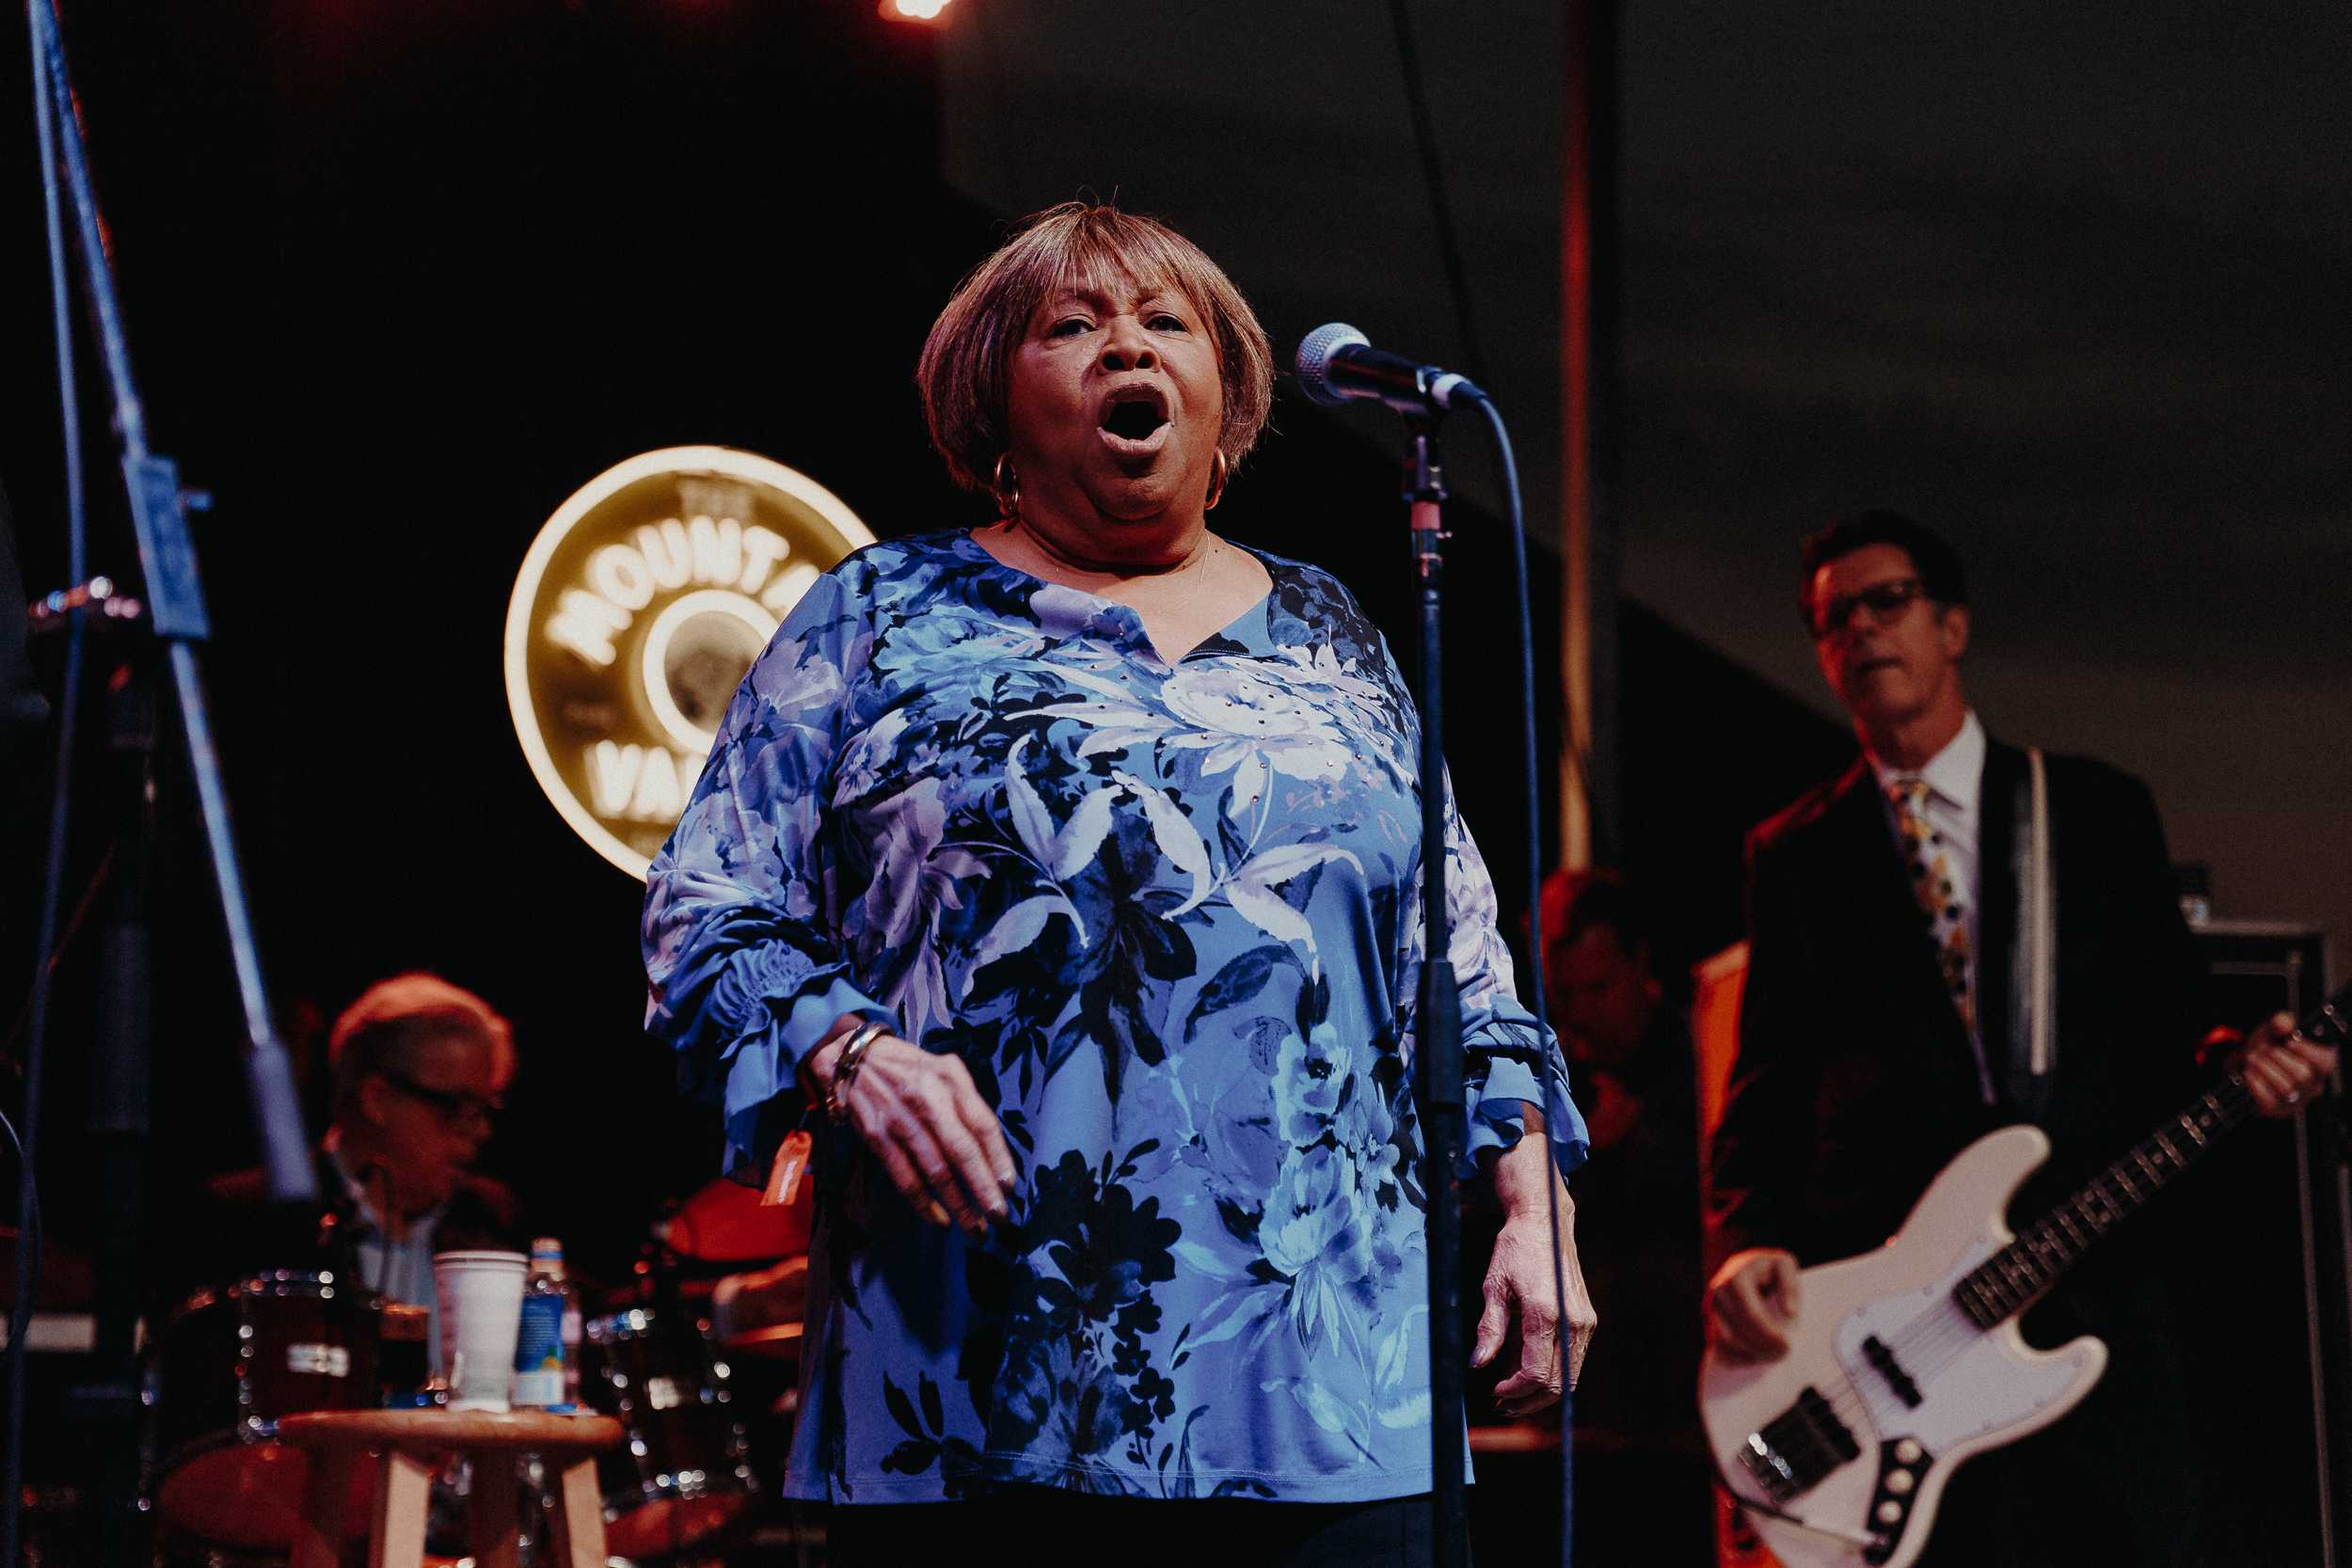 Mavis Staples at Luck Reunion (Photo by Mauricio Castro)